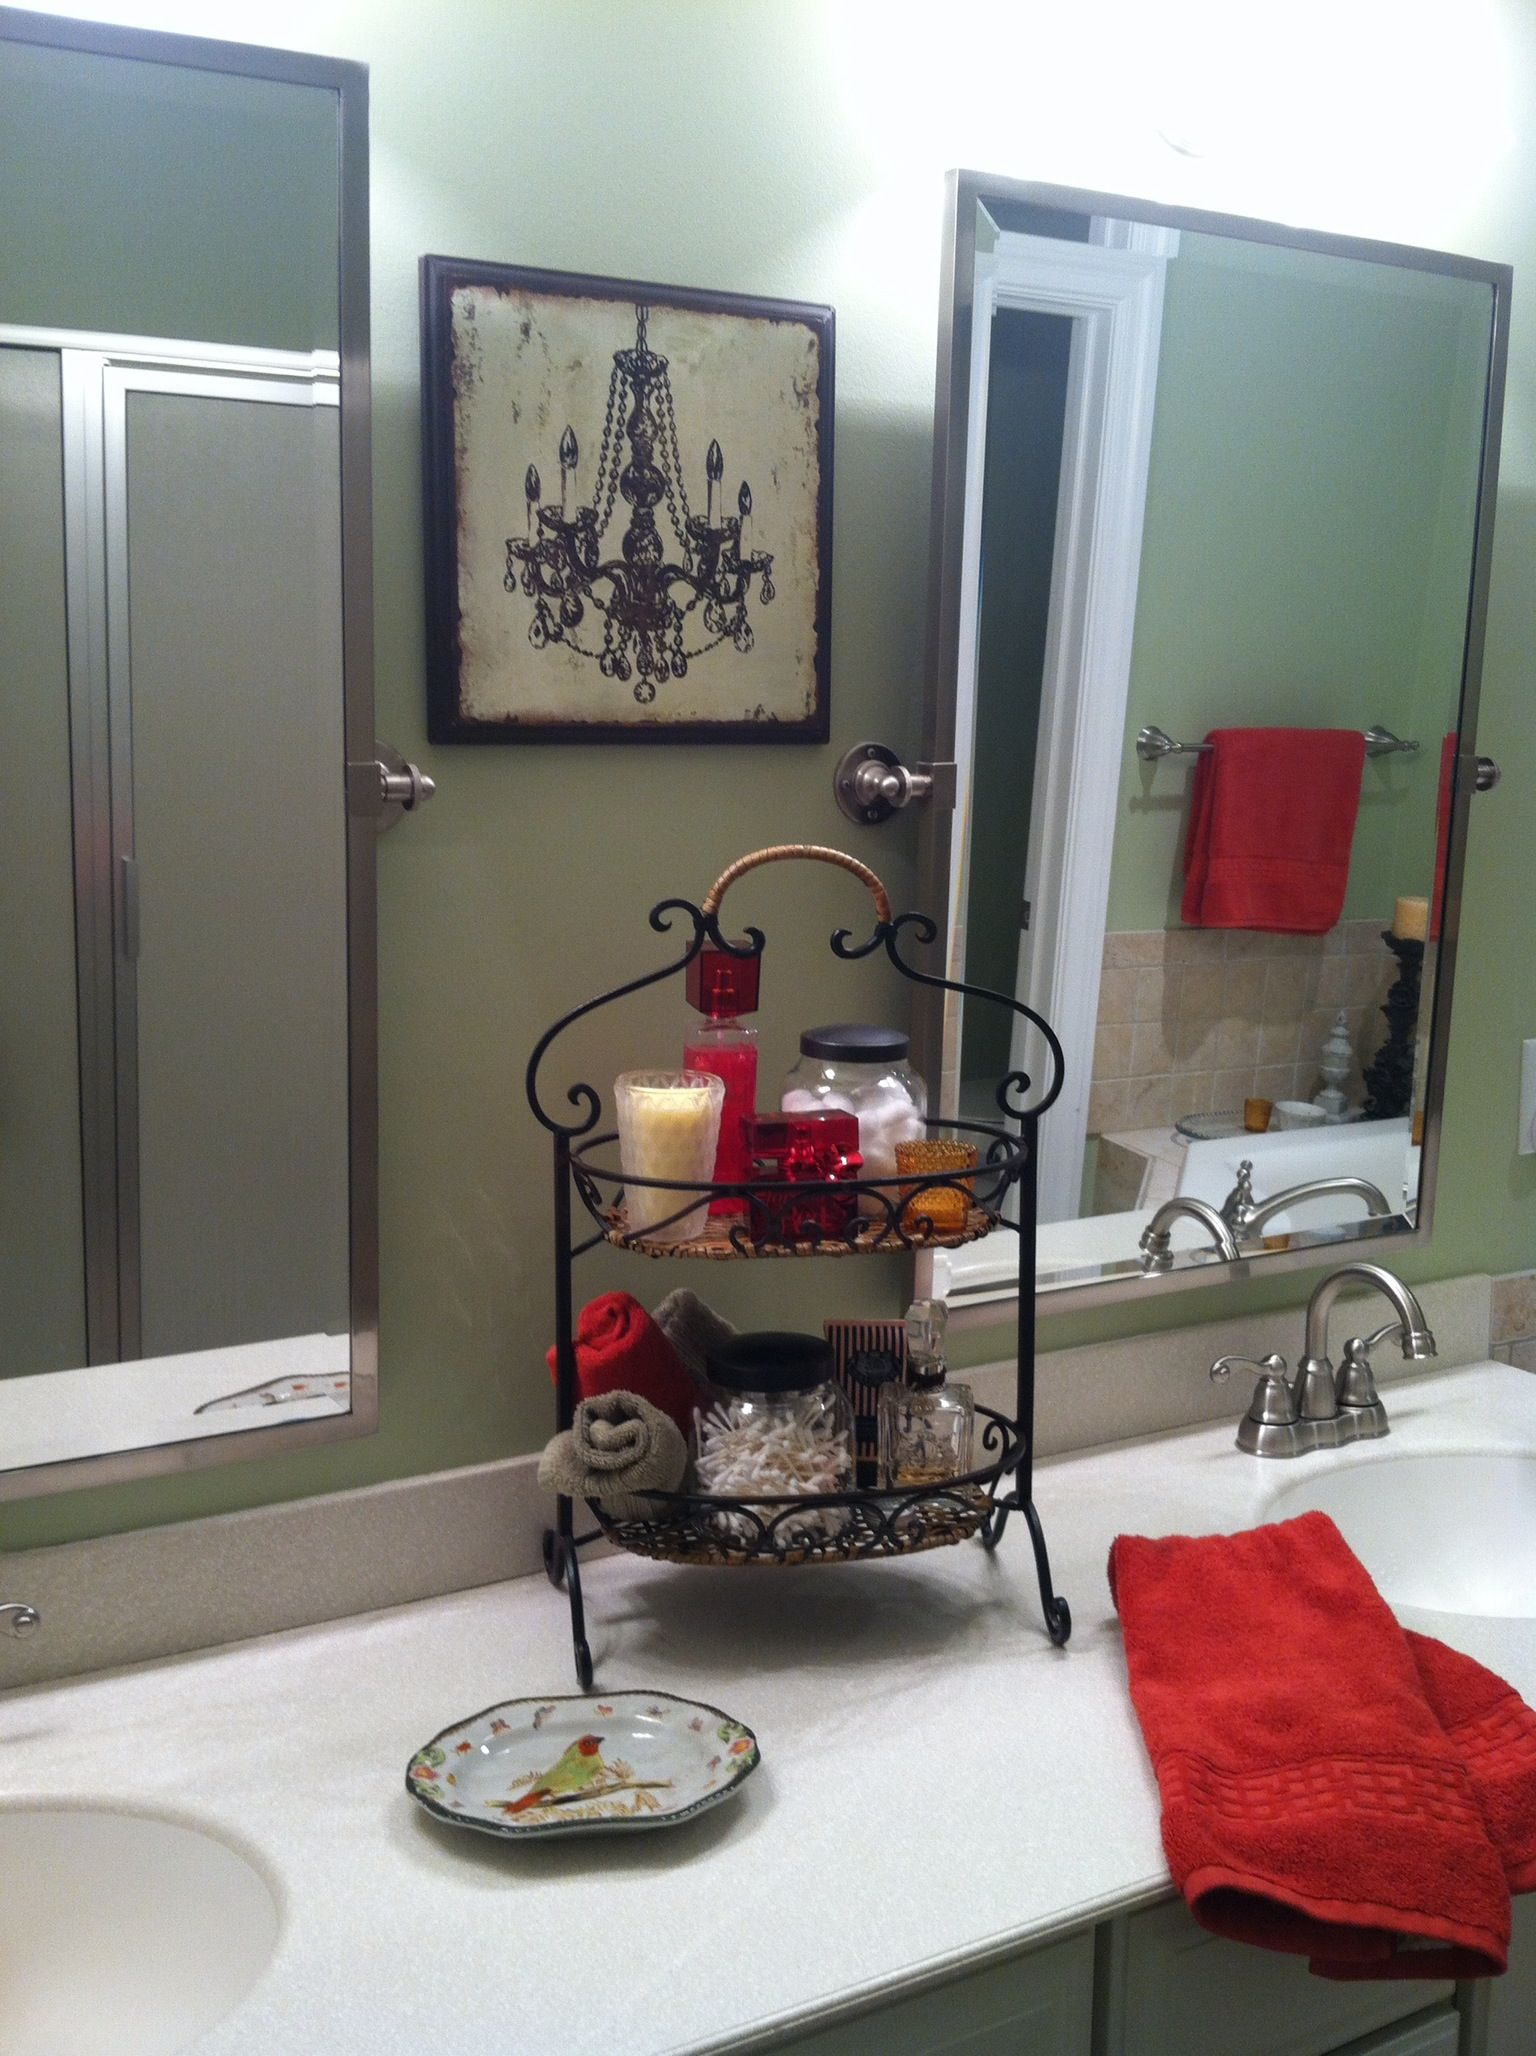 Bathroom Decor Decorating And Organizing Ideas For Bathrooms